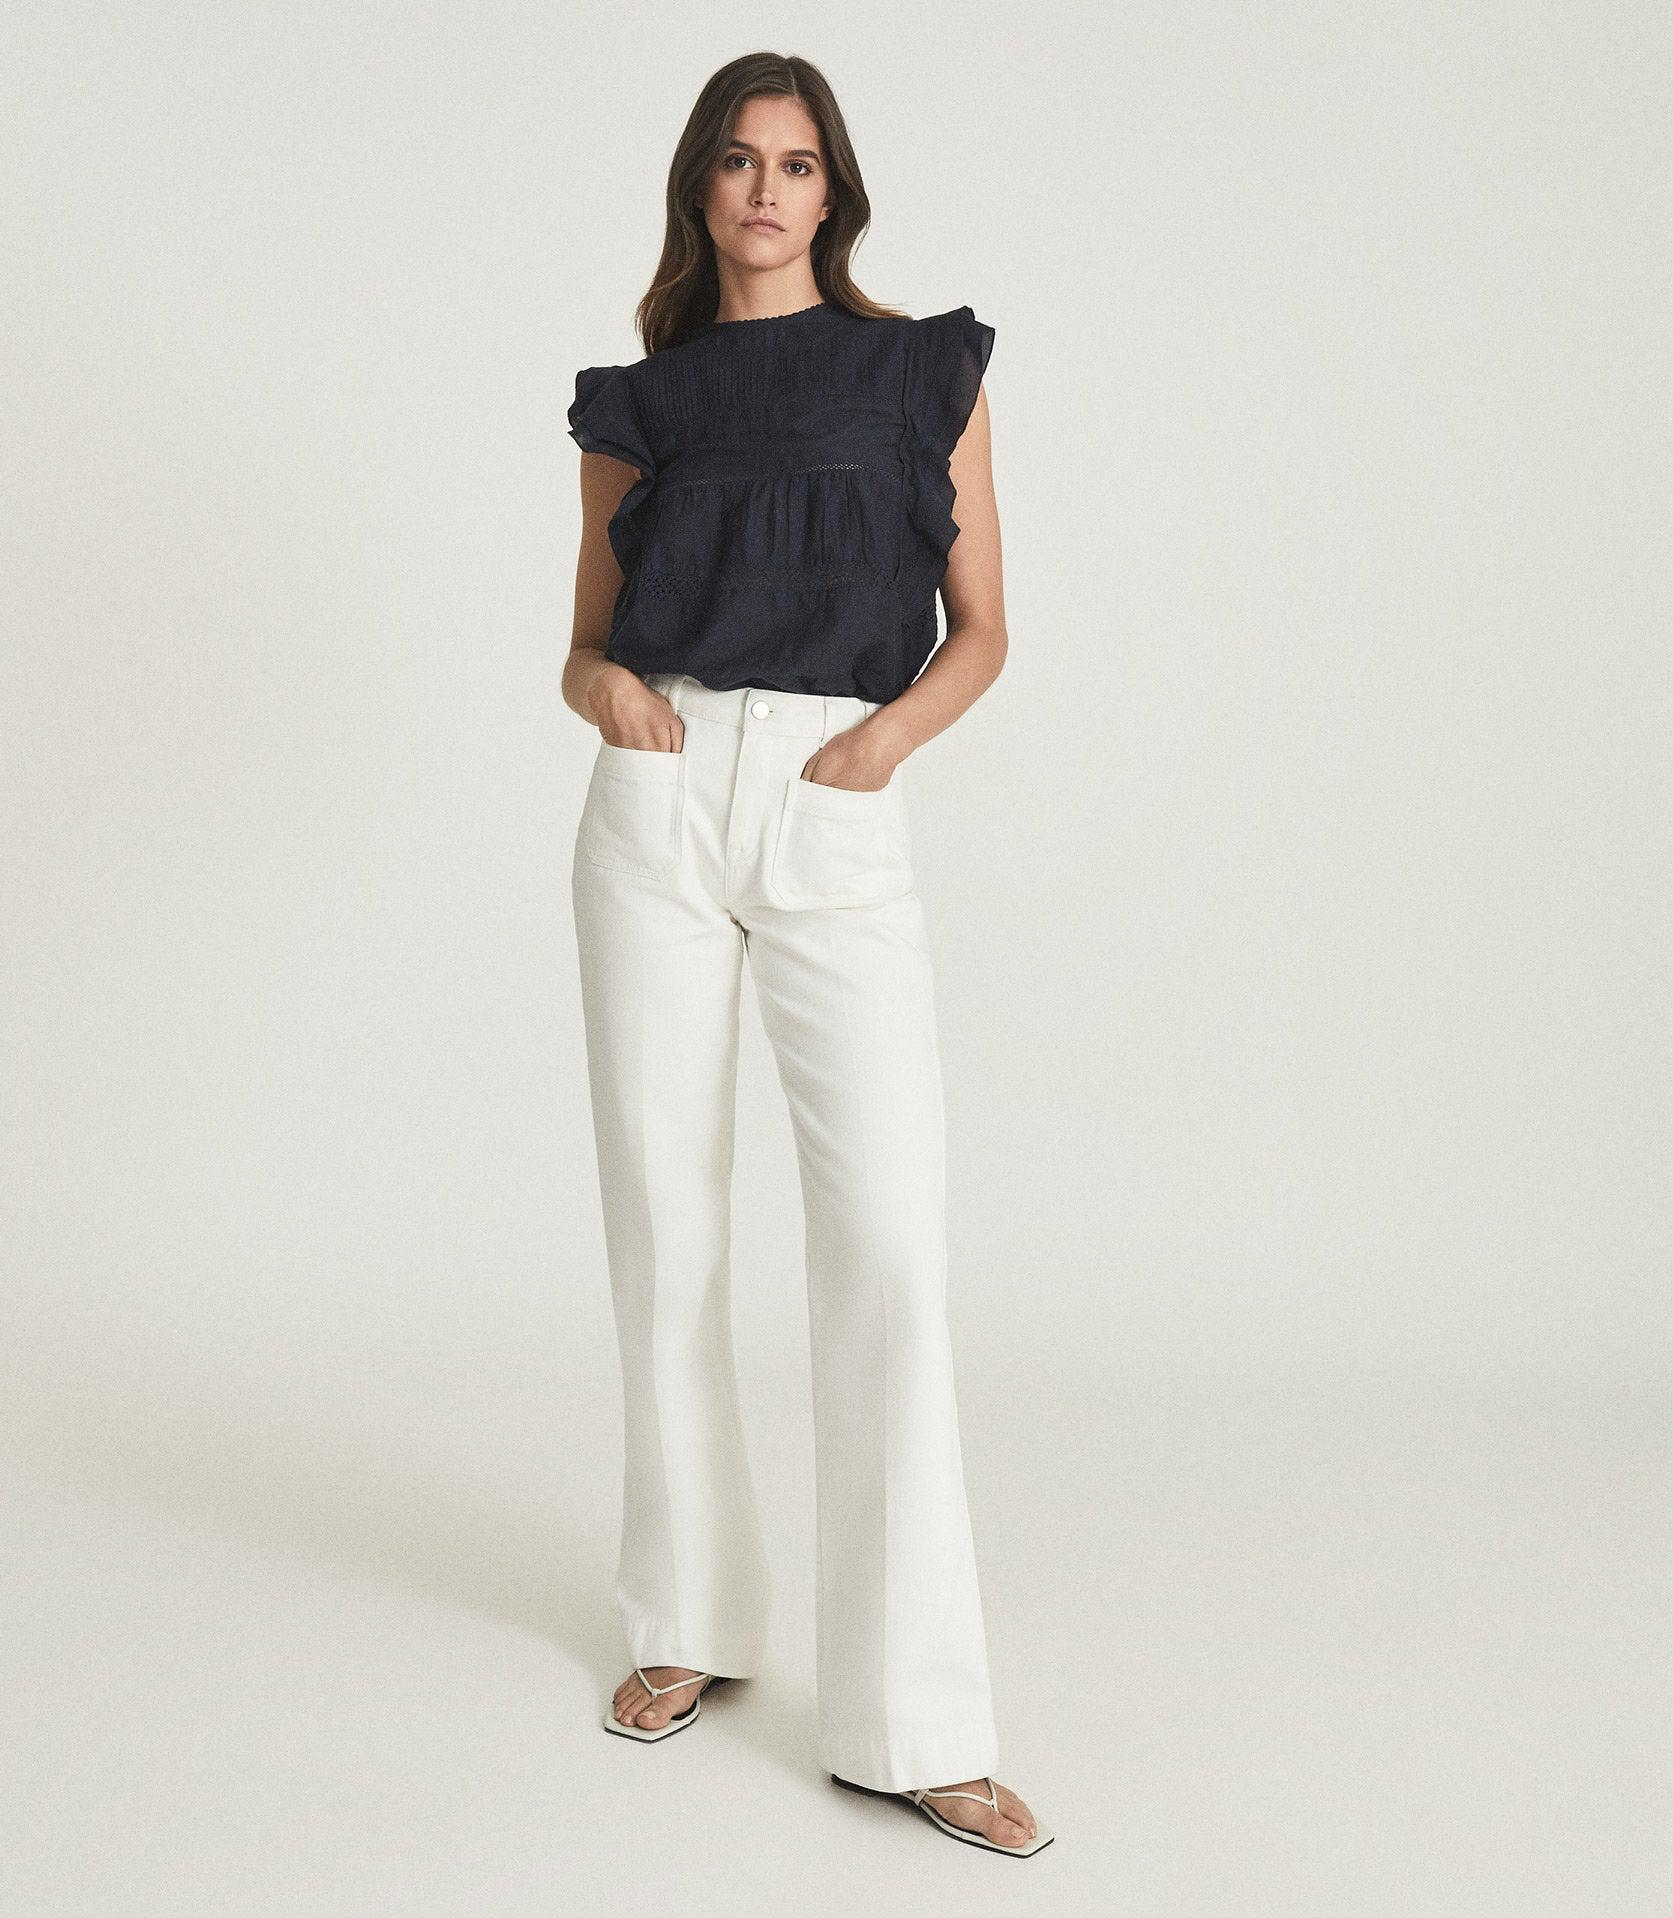 SIMONE - LACE DETAILED CAP SLEEVE TOP